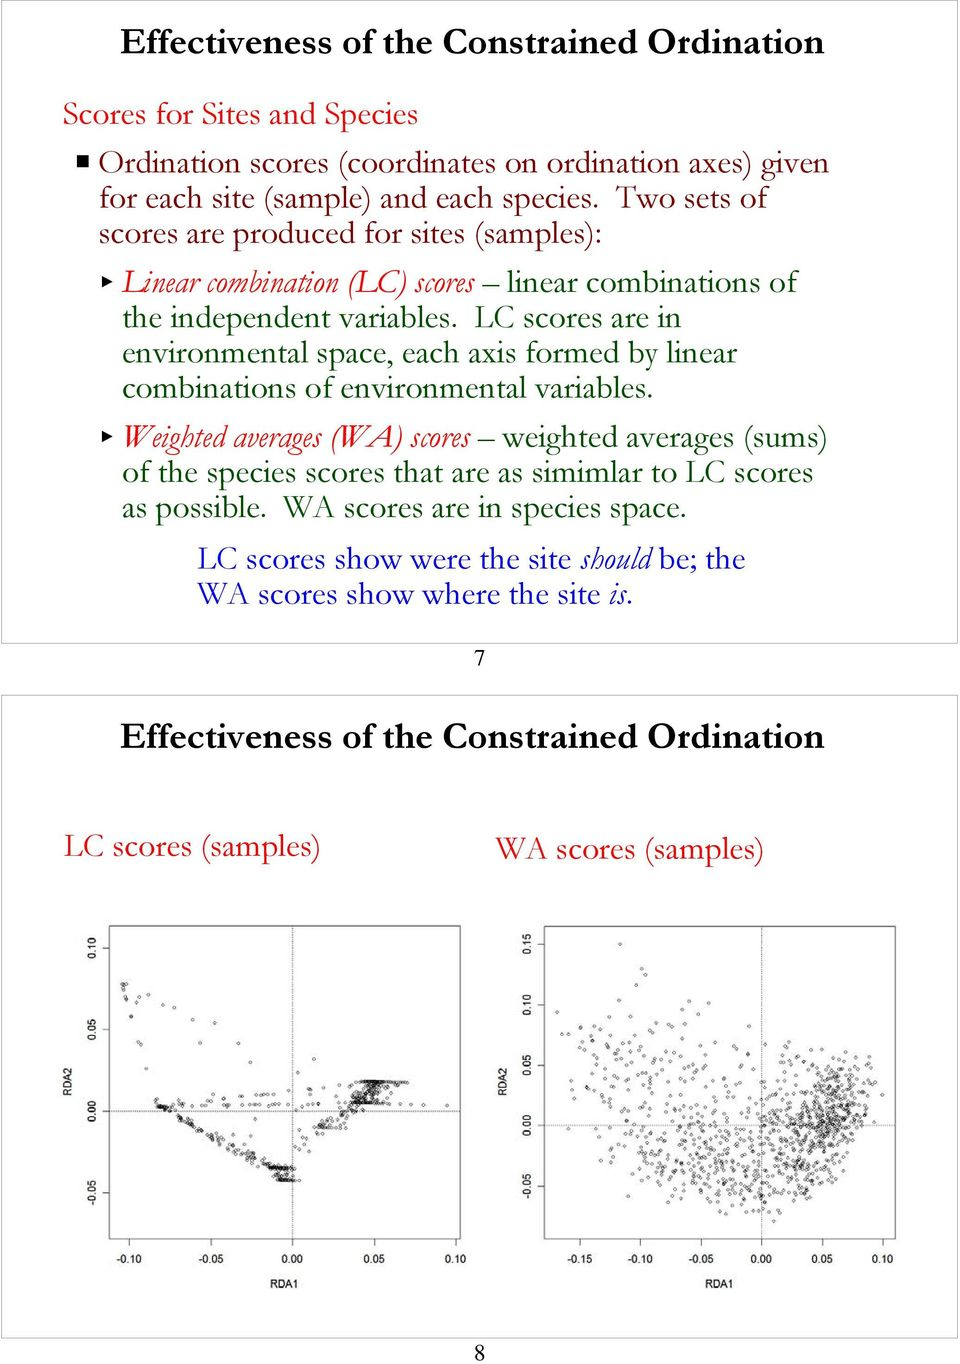 LC scores are in environmental space, each axis formed by linear combinations of environmental variables.